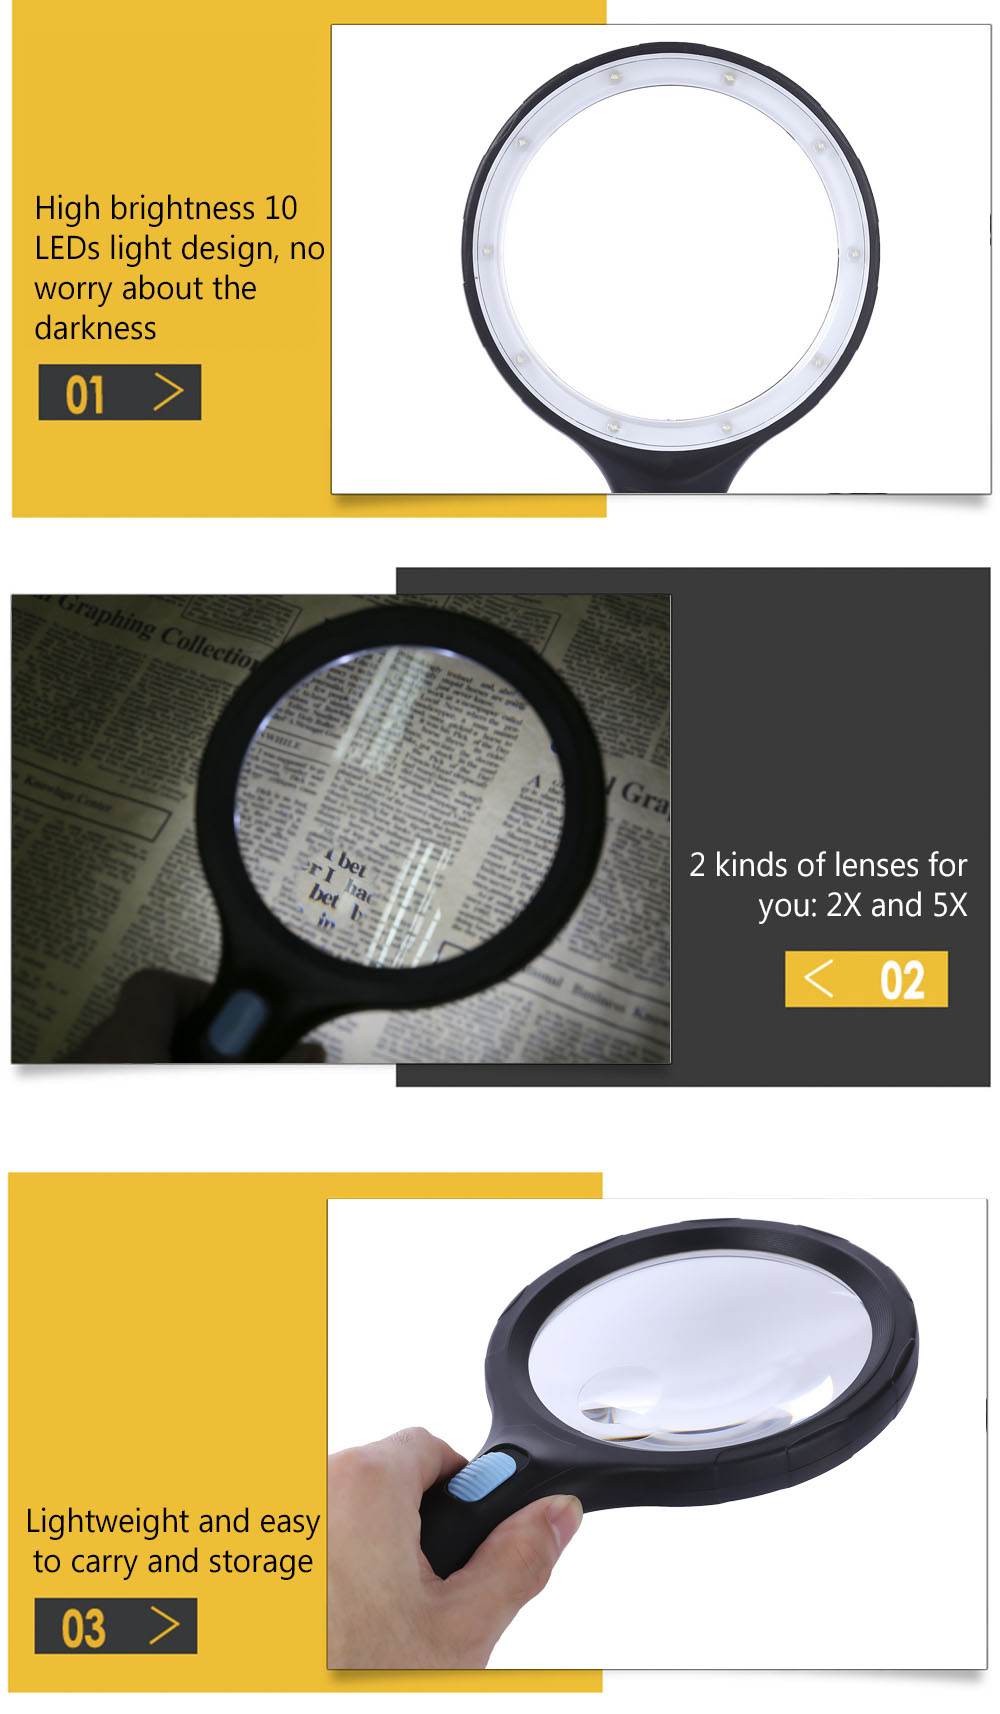 2X 5X High Brightness 10 LEDs Handheld Magnifier Magnified Tool